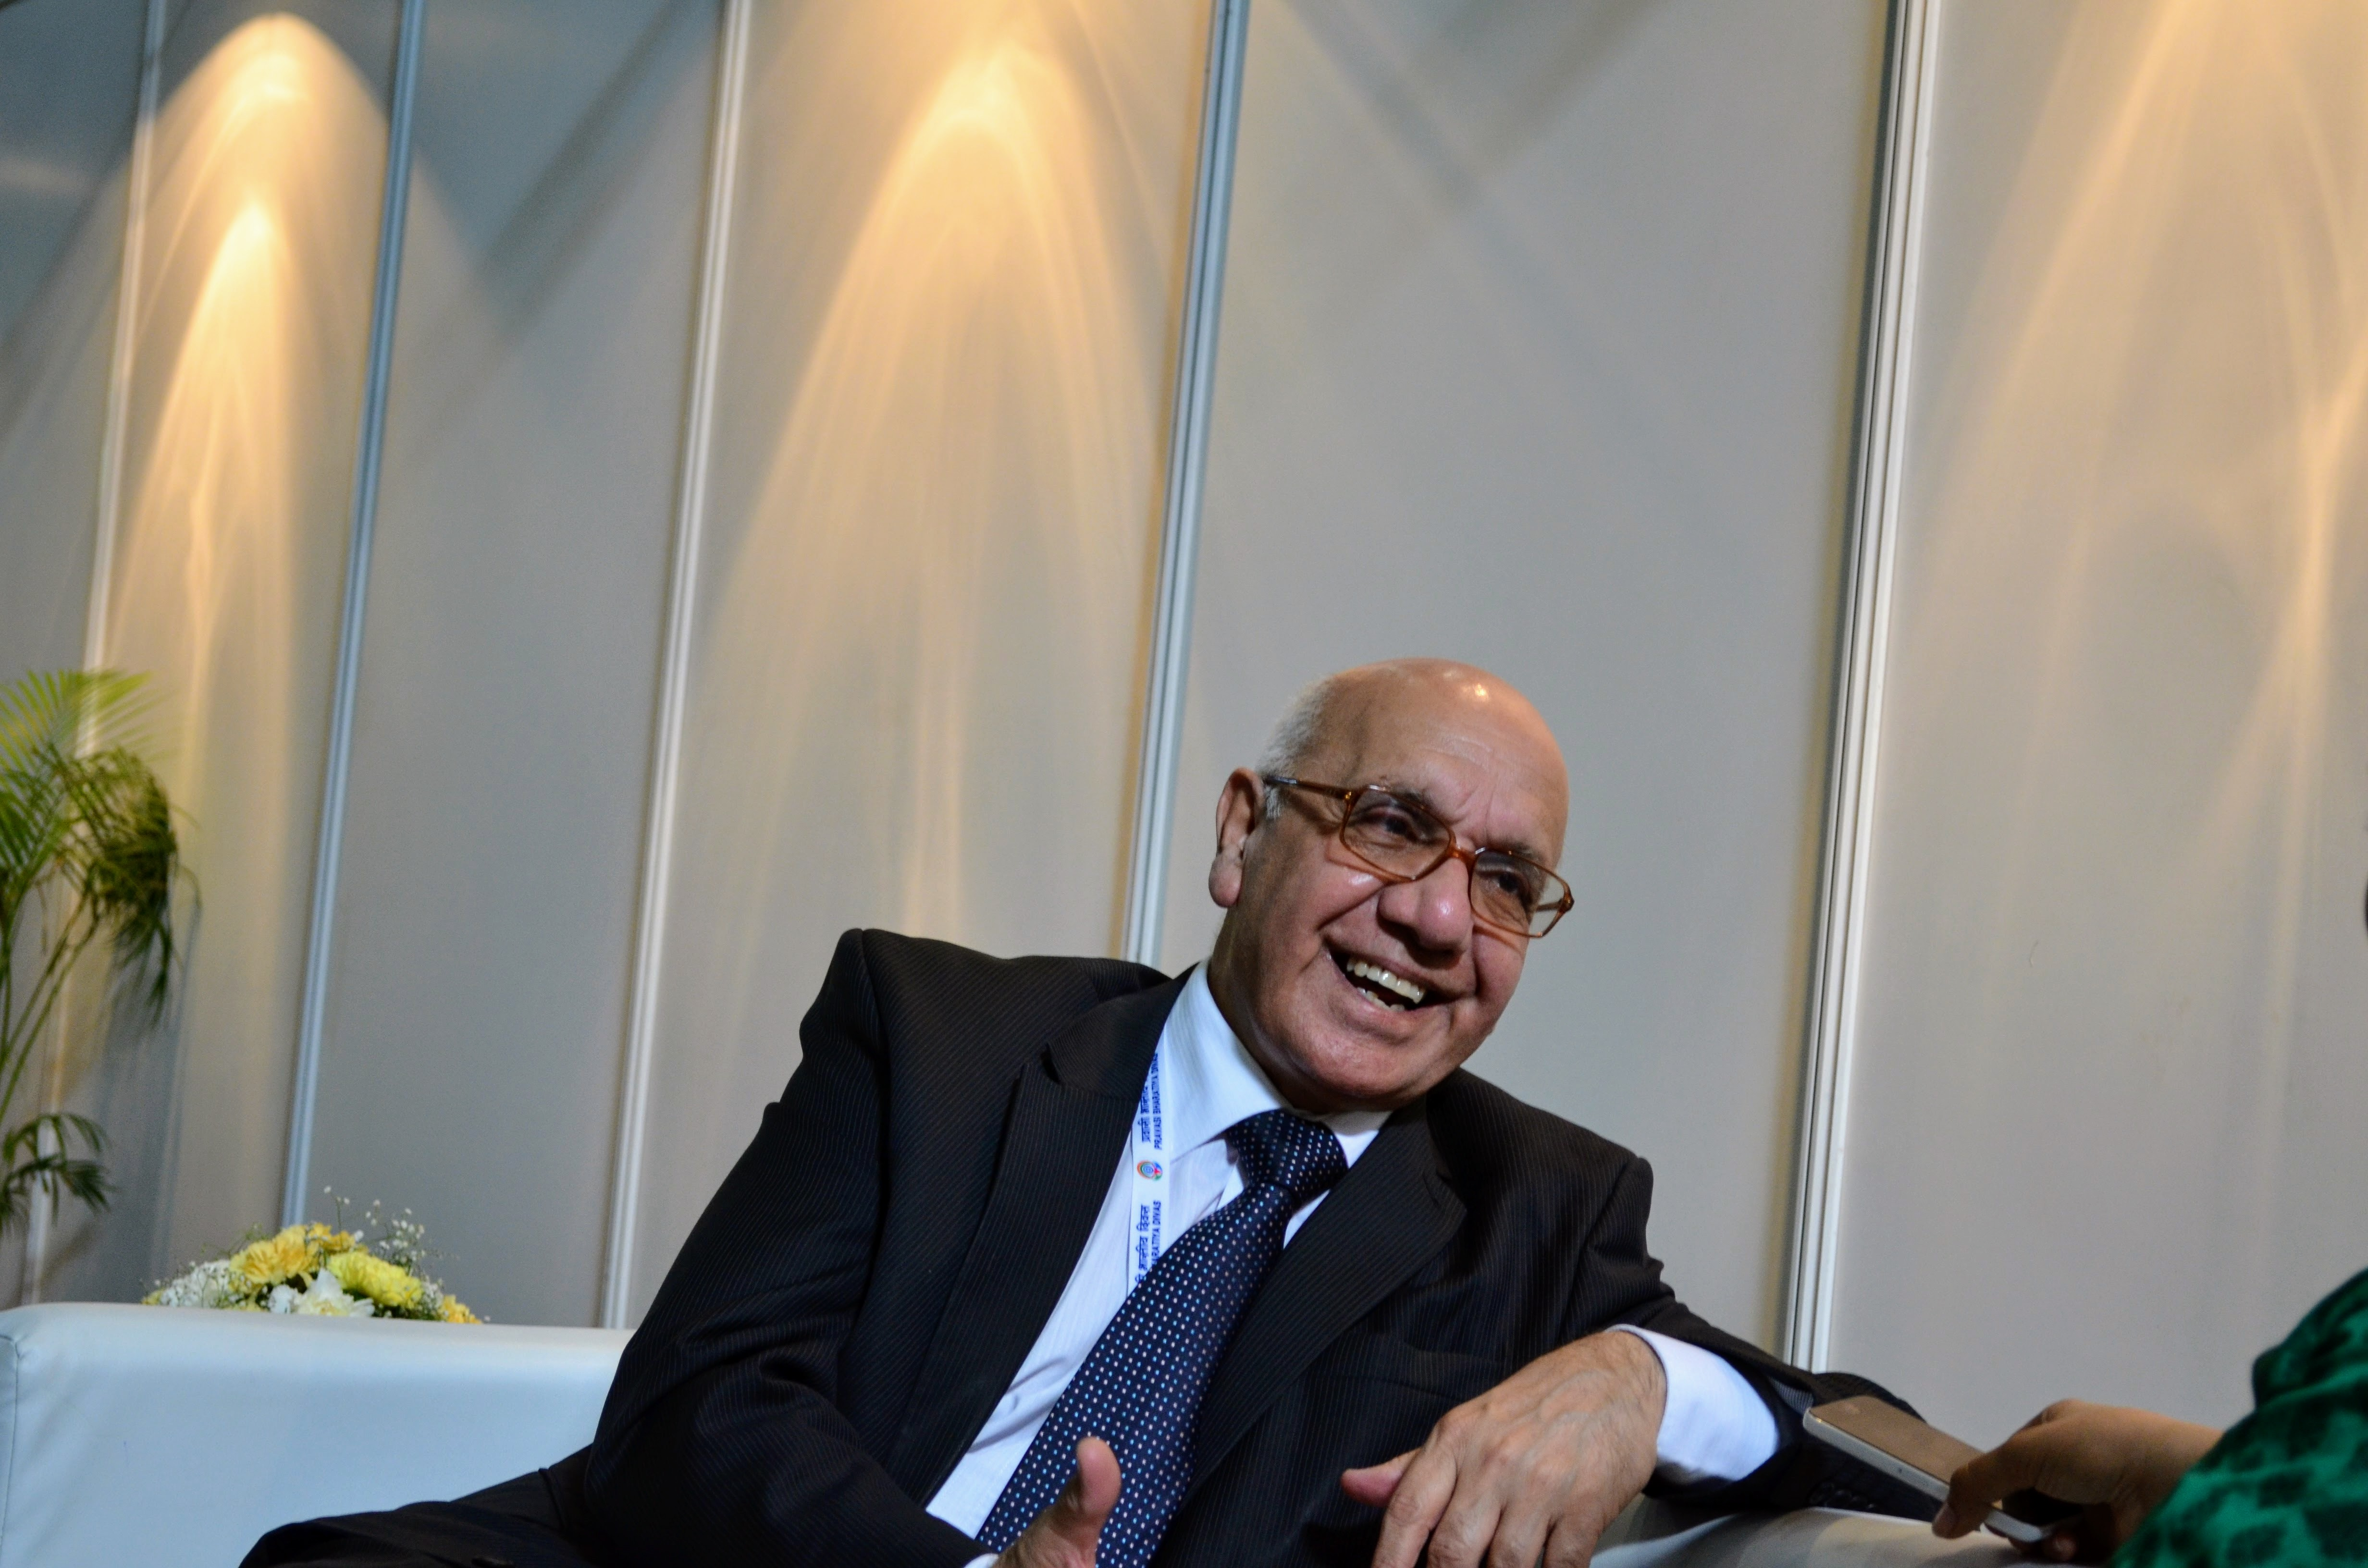 Virendra Sharma, an Indian-origin British Labour Party politician and the Member of Parliament (MP) for Ealing Southall since 2007 at the PBD 2017 convention Photo: Connected to India